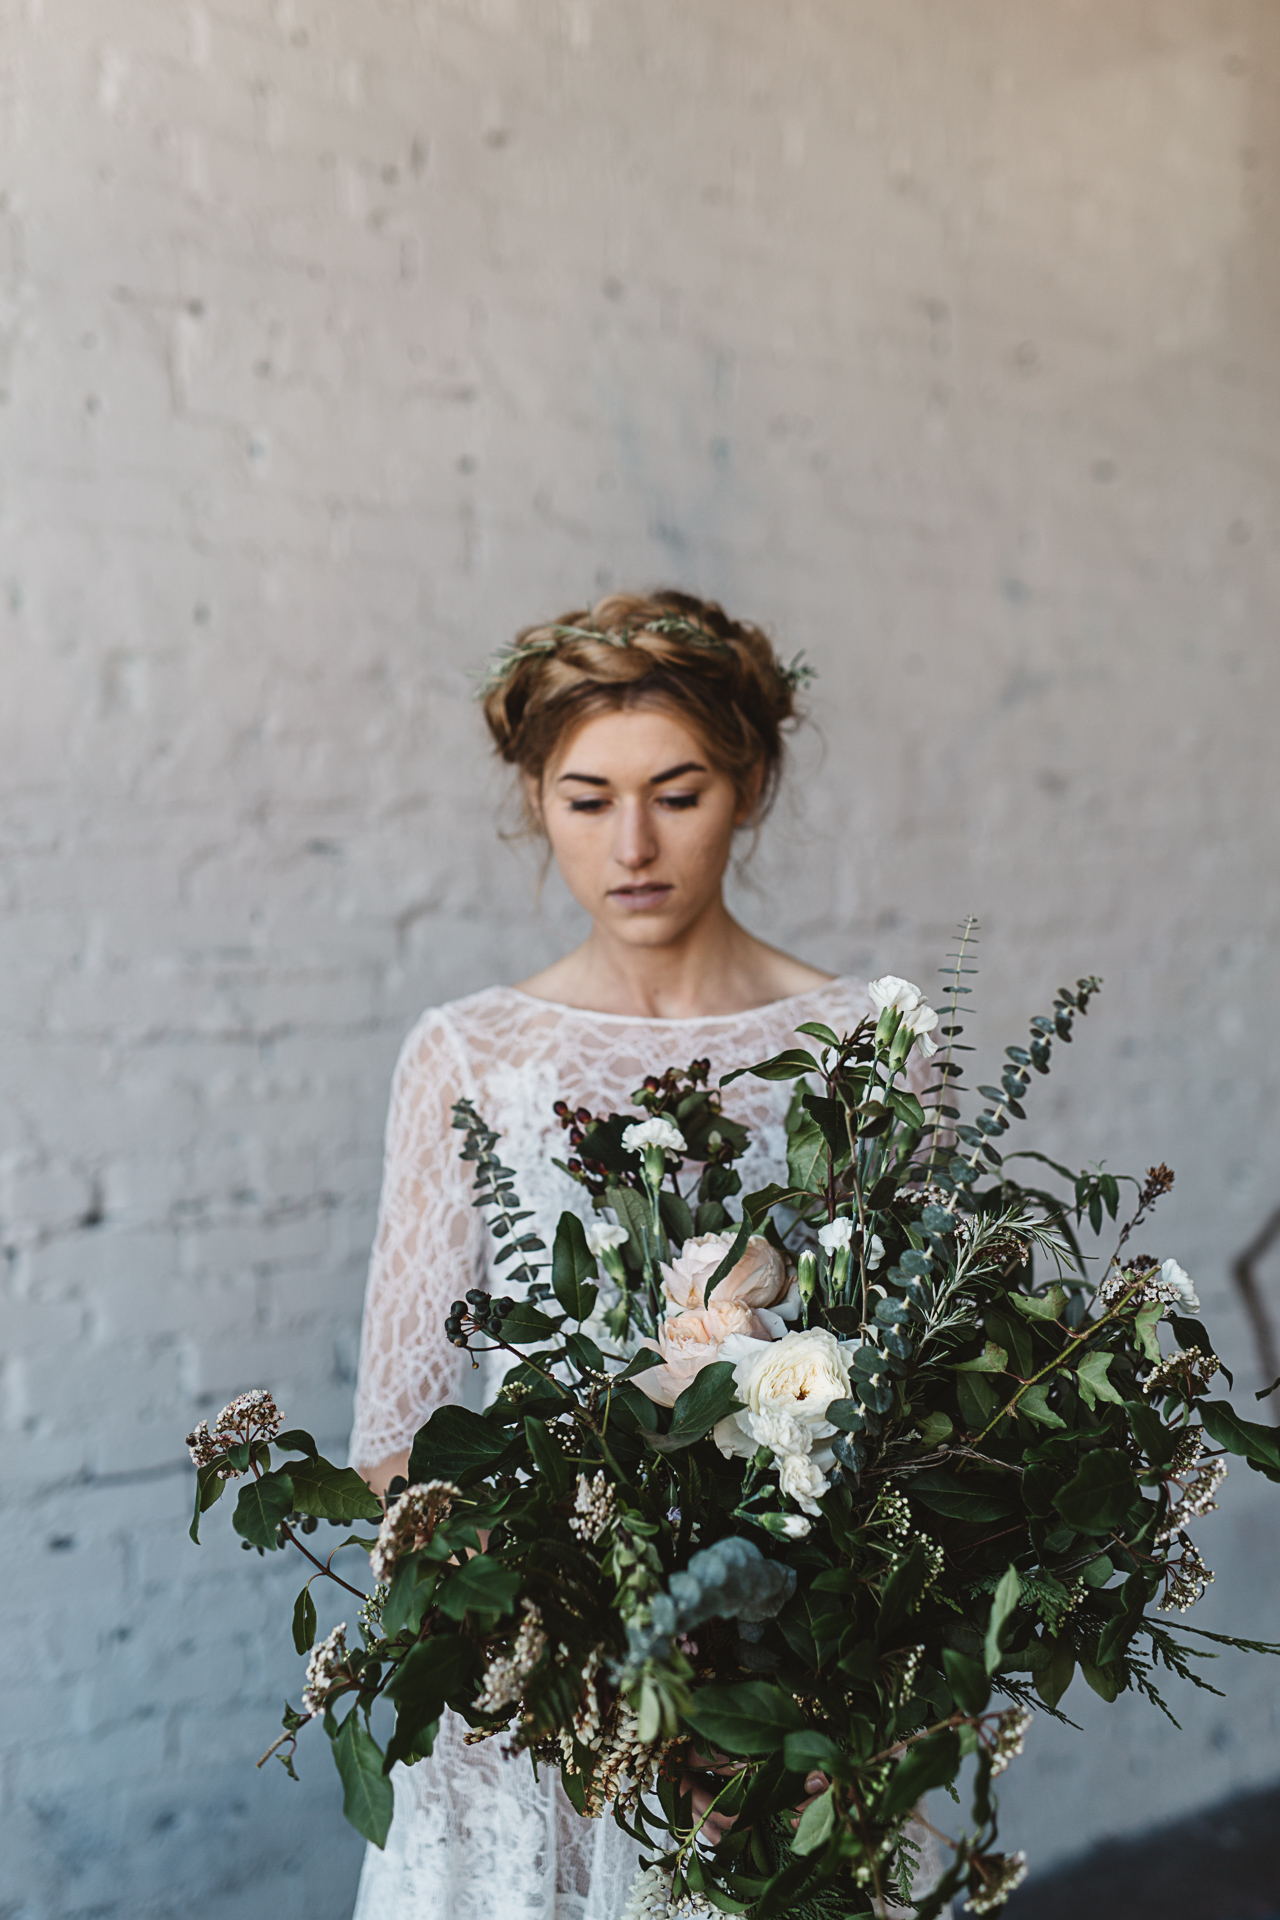 organic and industrial bridal inspiration by Jess Hunter, Seattle warehouse wedding inspiration, warehouse indoor wedding with greenery decor, wild foraged bouquet ina Seattle wedding, rosemary floral crown bridal style, modern industrial wedding